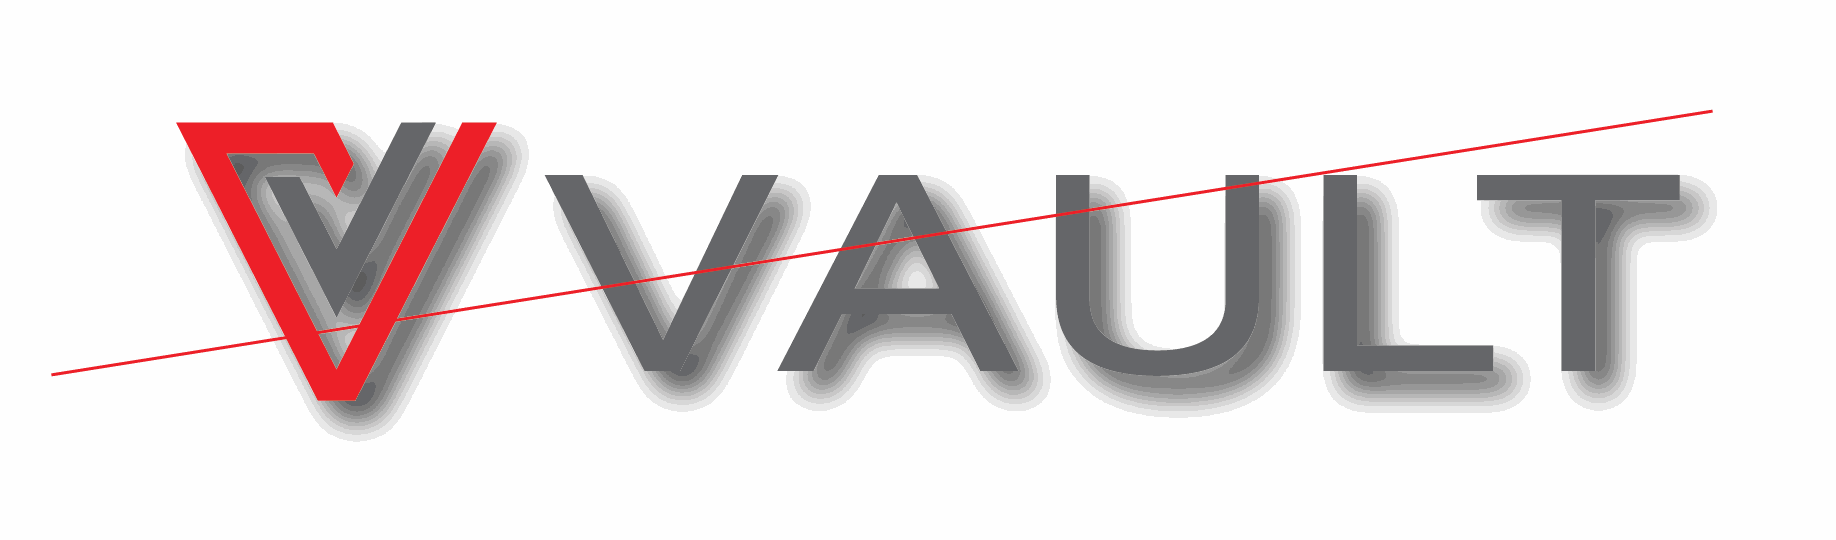 Vault logo misuse of effects